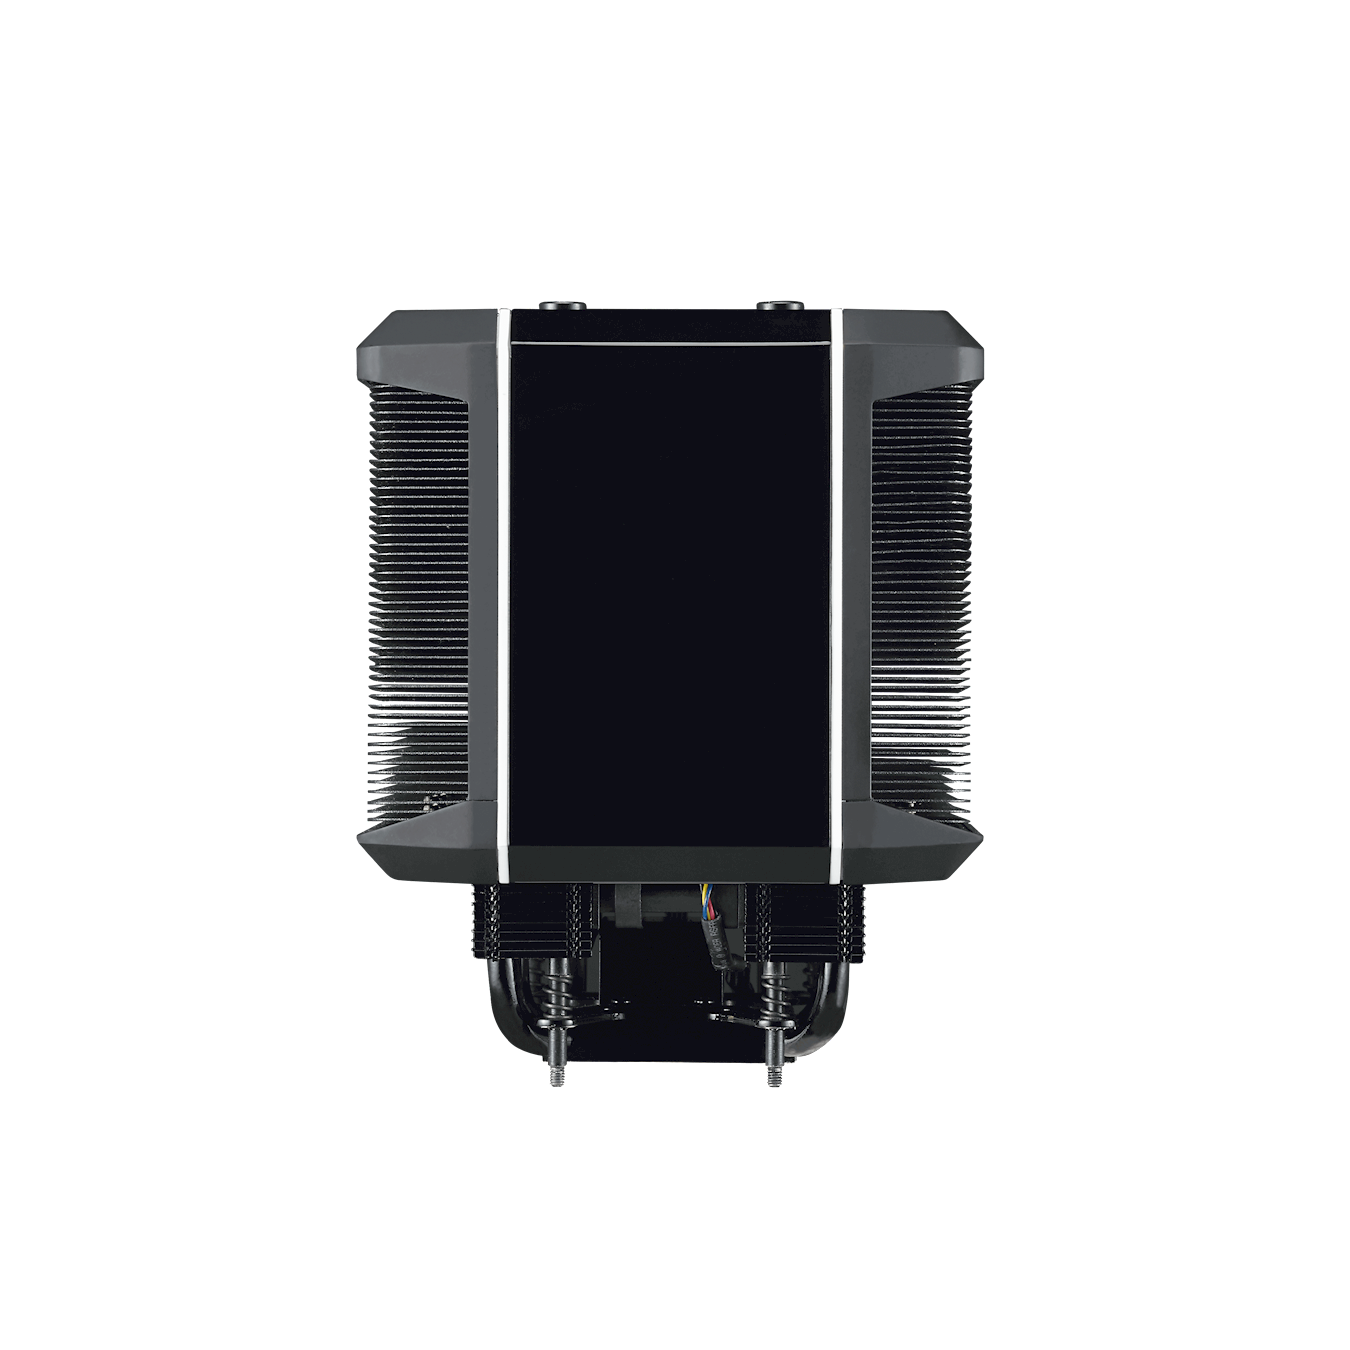 A combination of 2 sets of heatsink allows bigger and more spread out surface area.